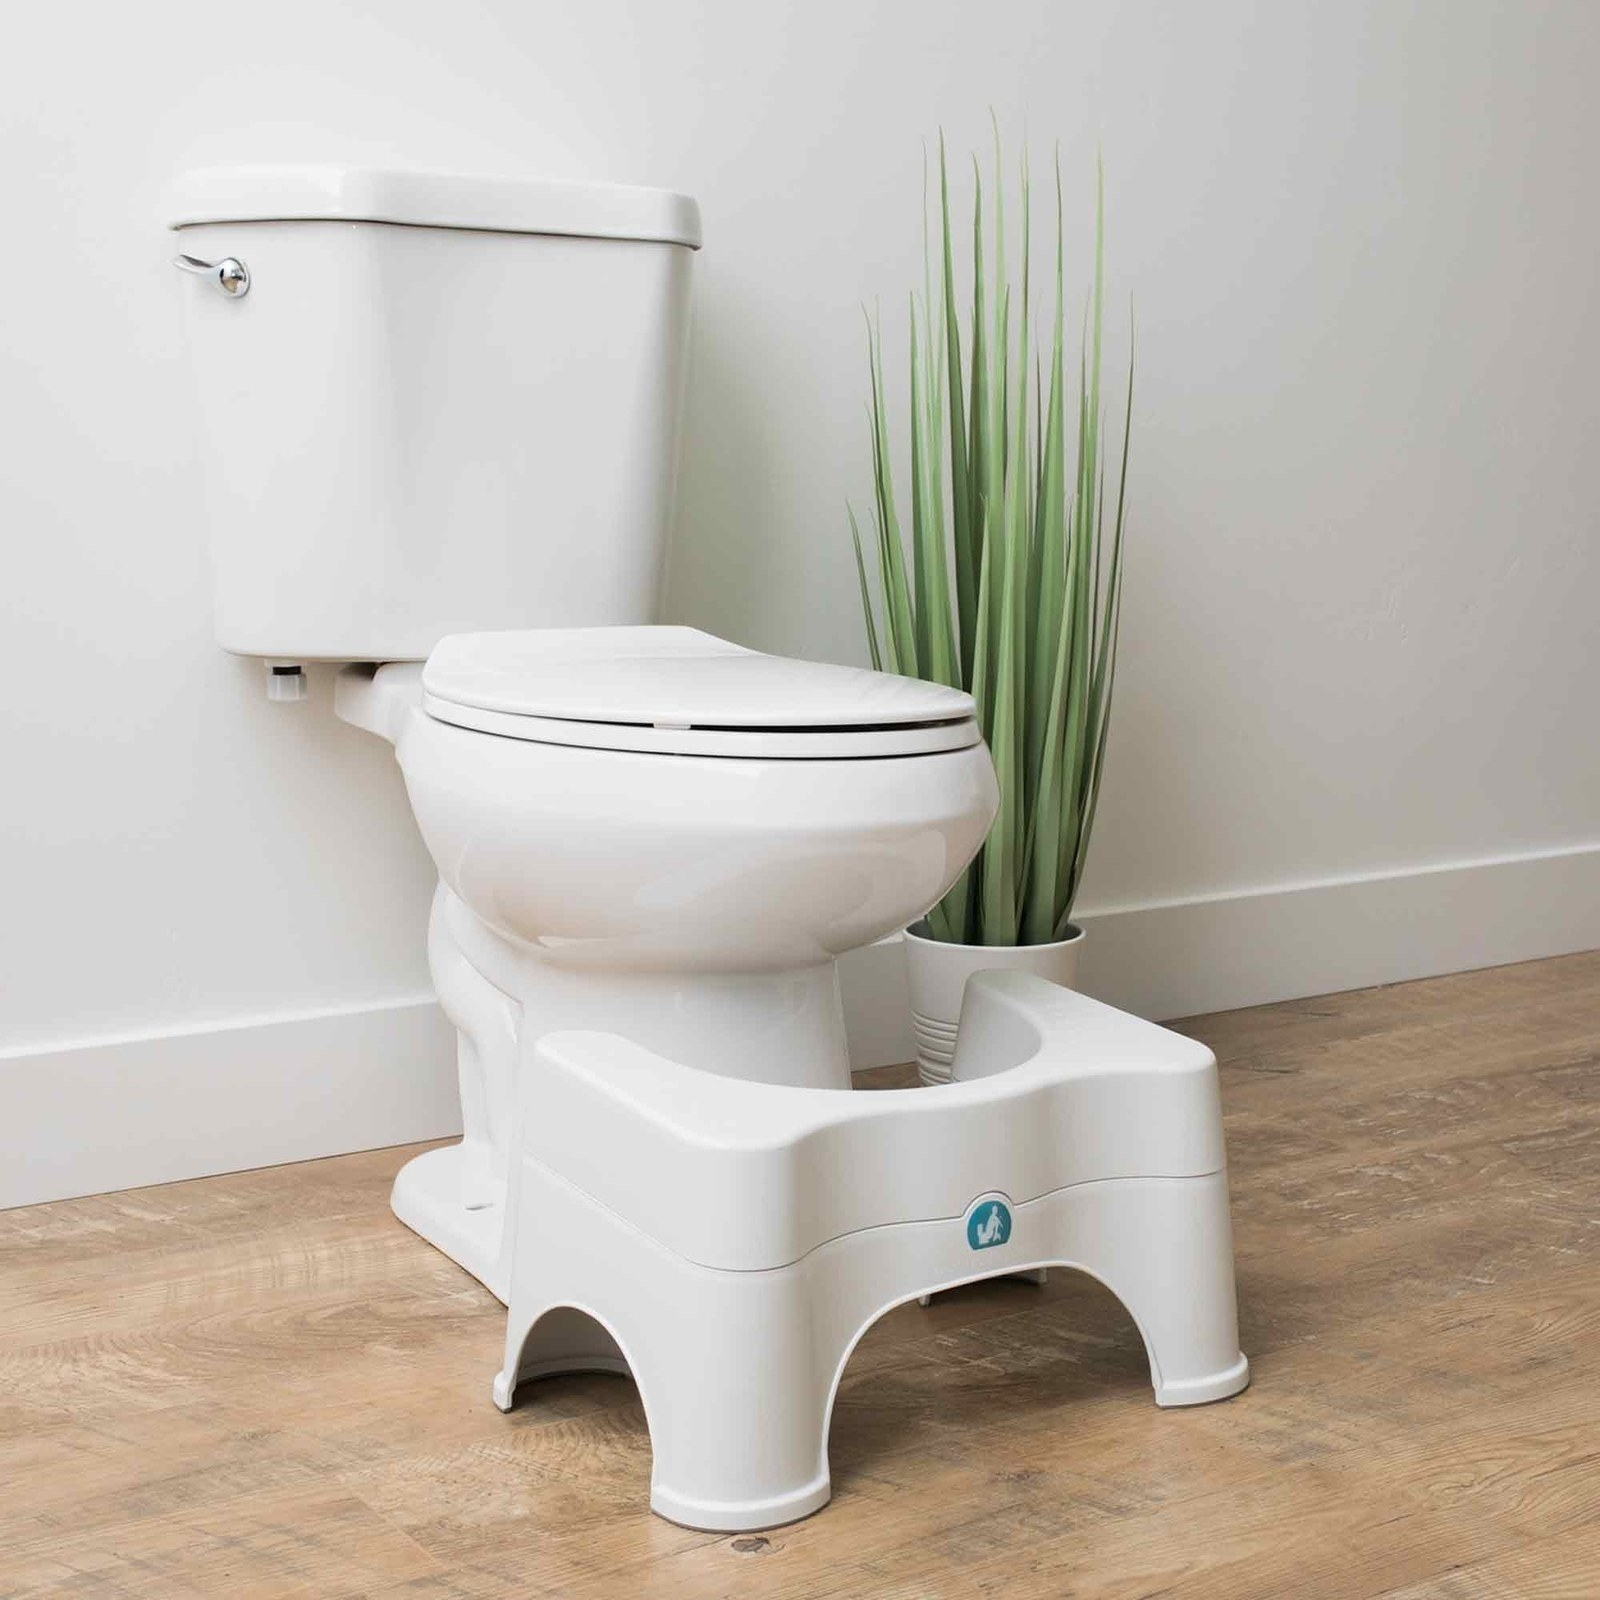 Squatty Potty placed at the foot of the toilet to show that it can easily slide under